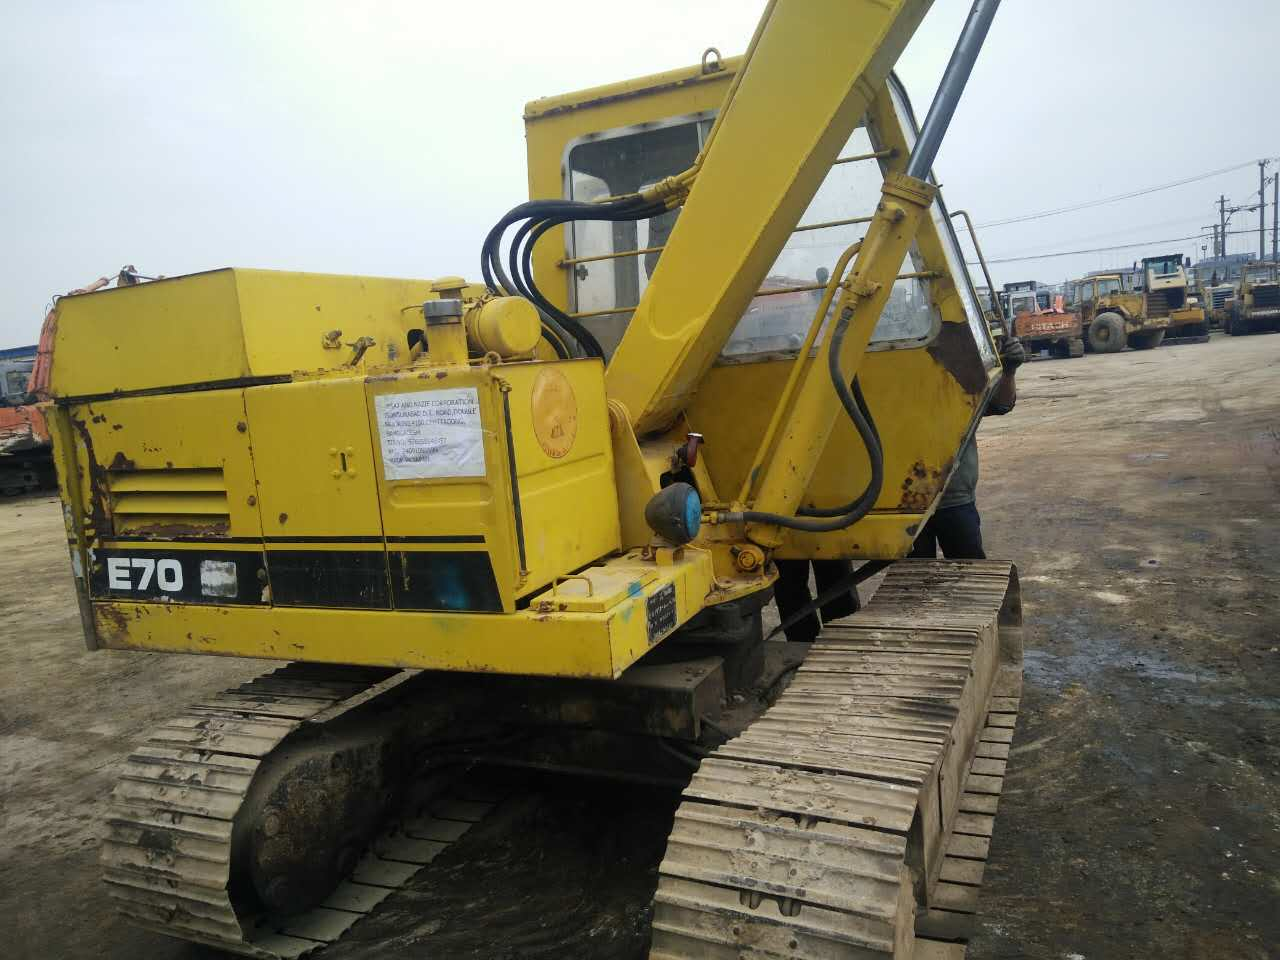 USED CATERPILLAR E70B MIDI EXCAVATOR GOOD CONDITION FOR HOT SALE